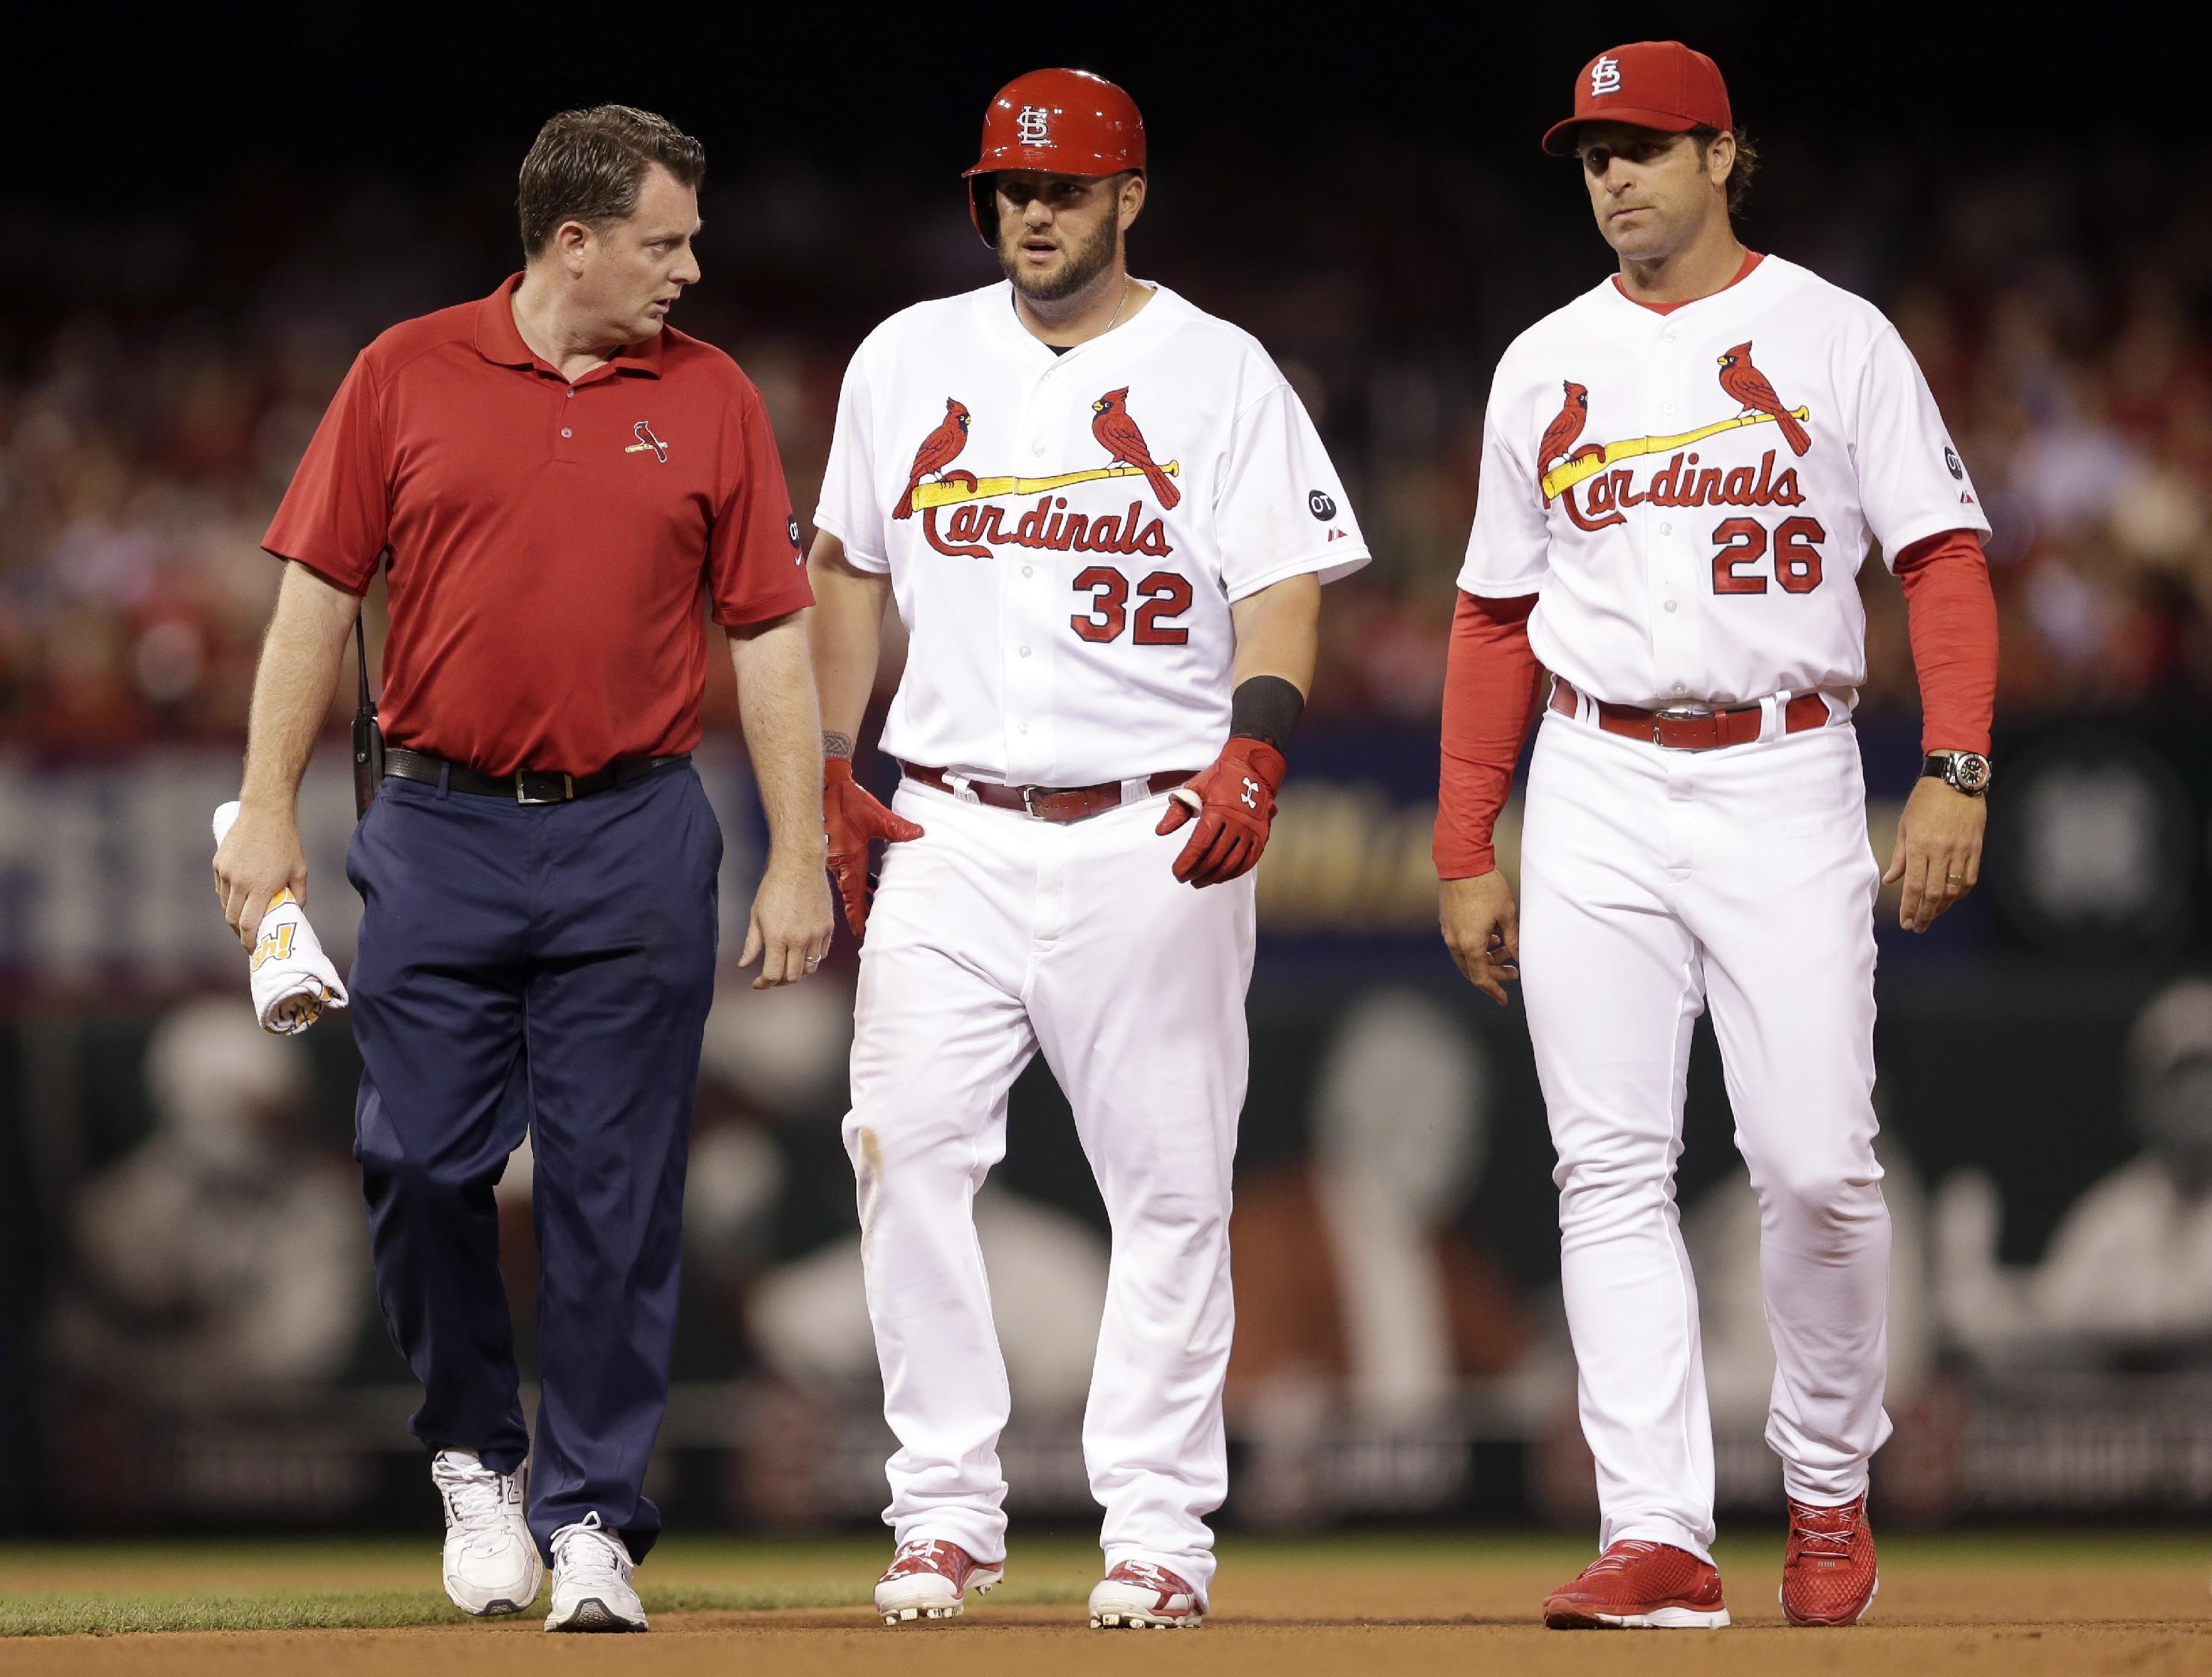 Adams injured running bases, removed in 5th inning